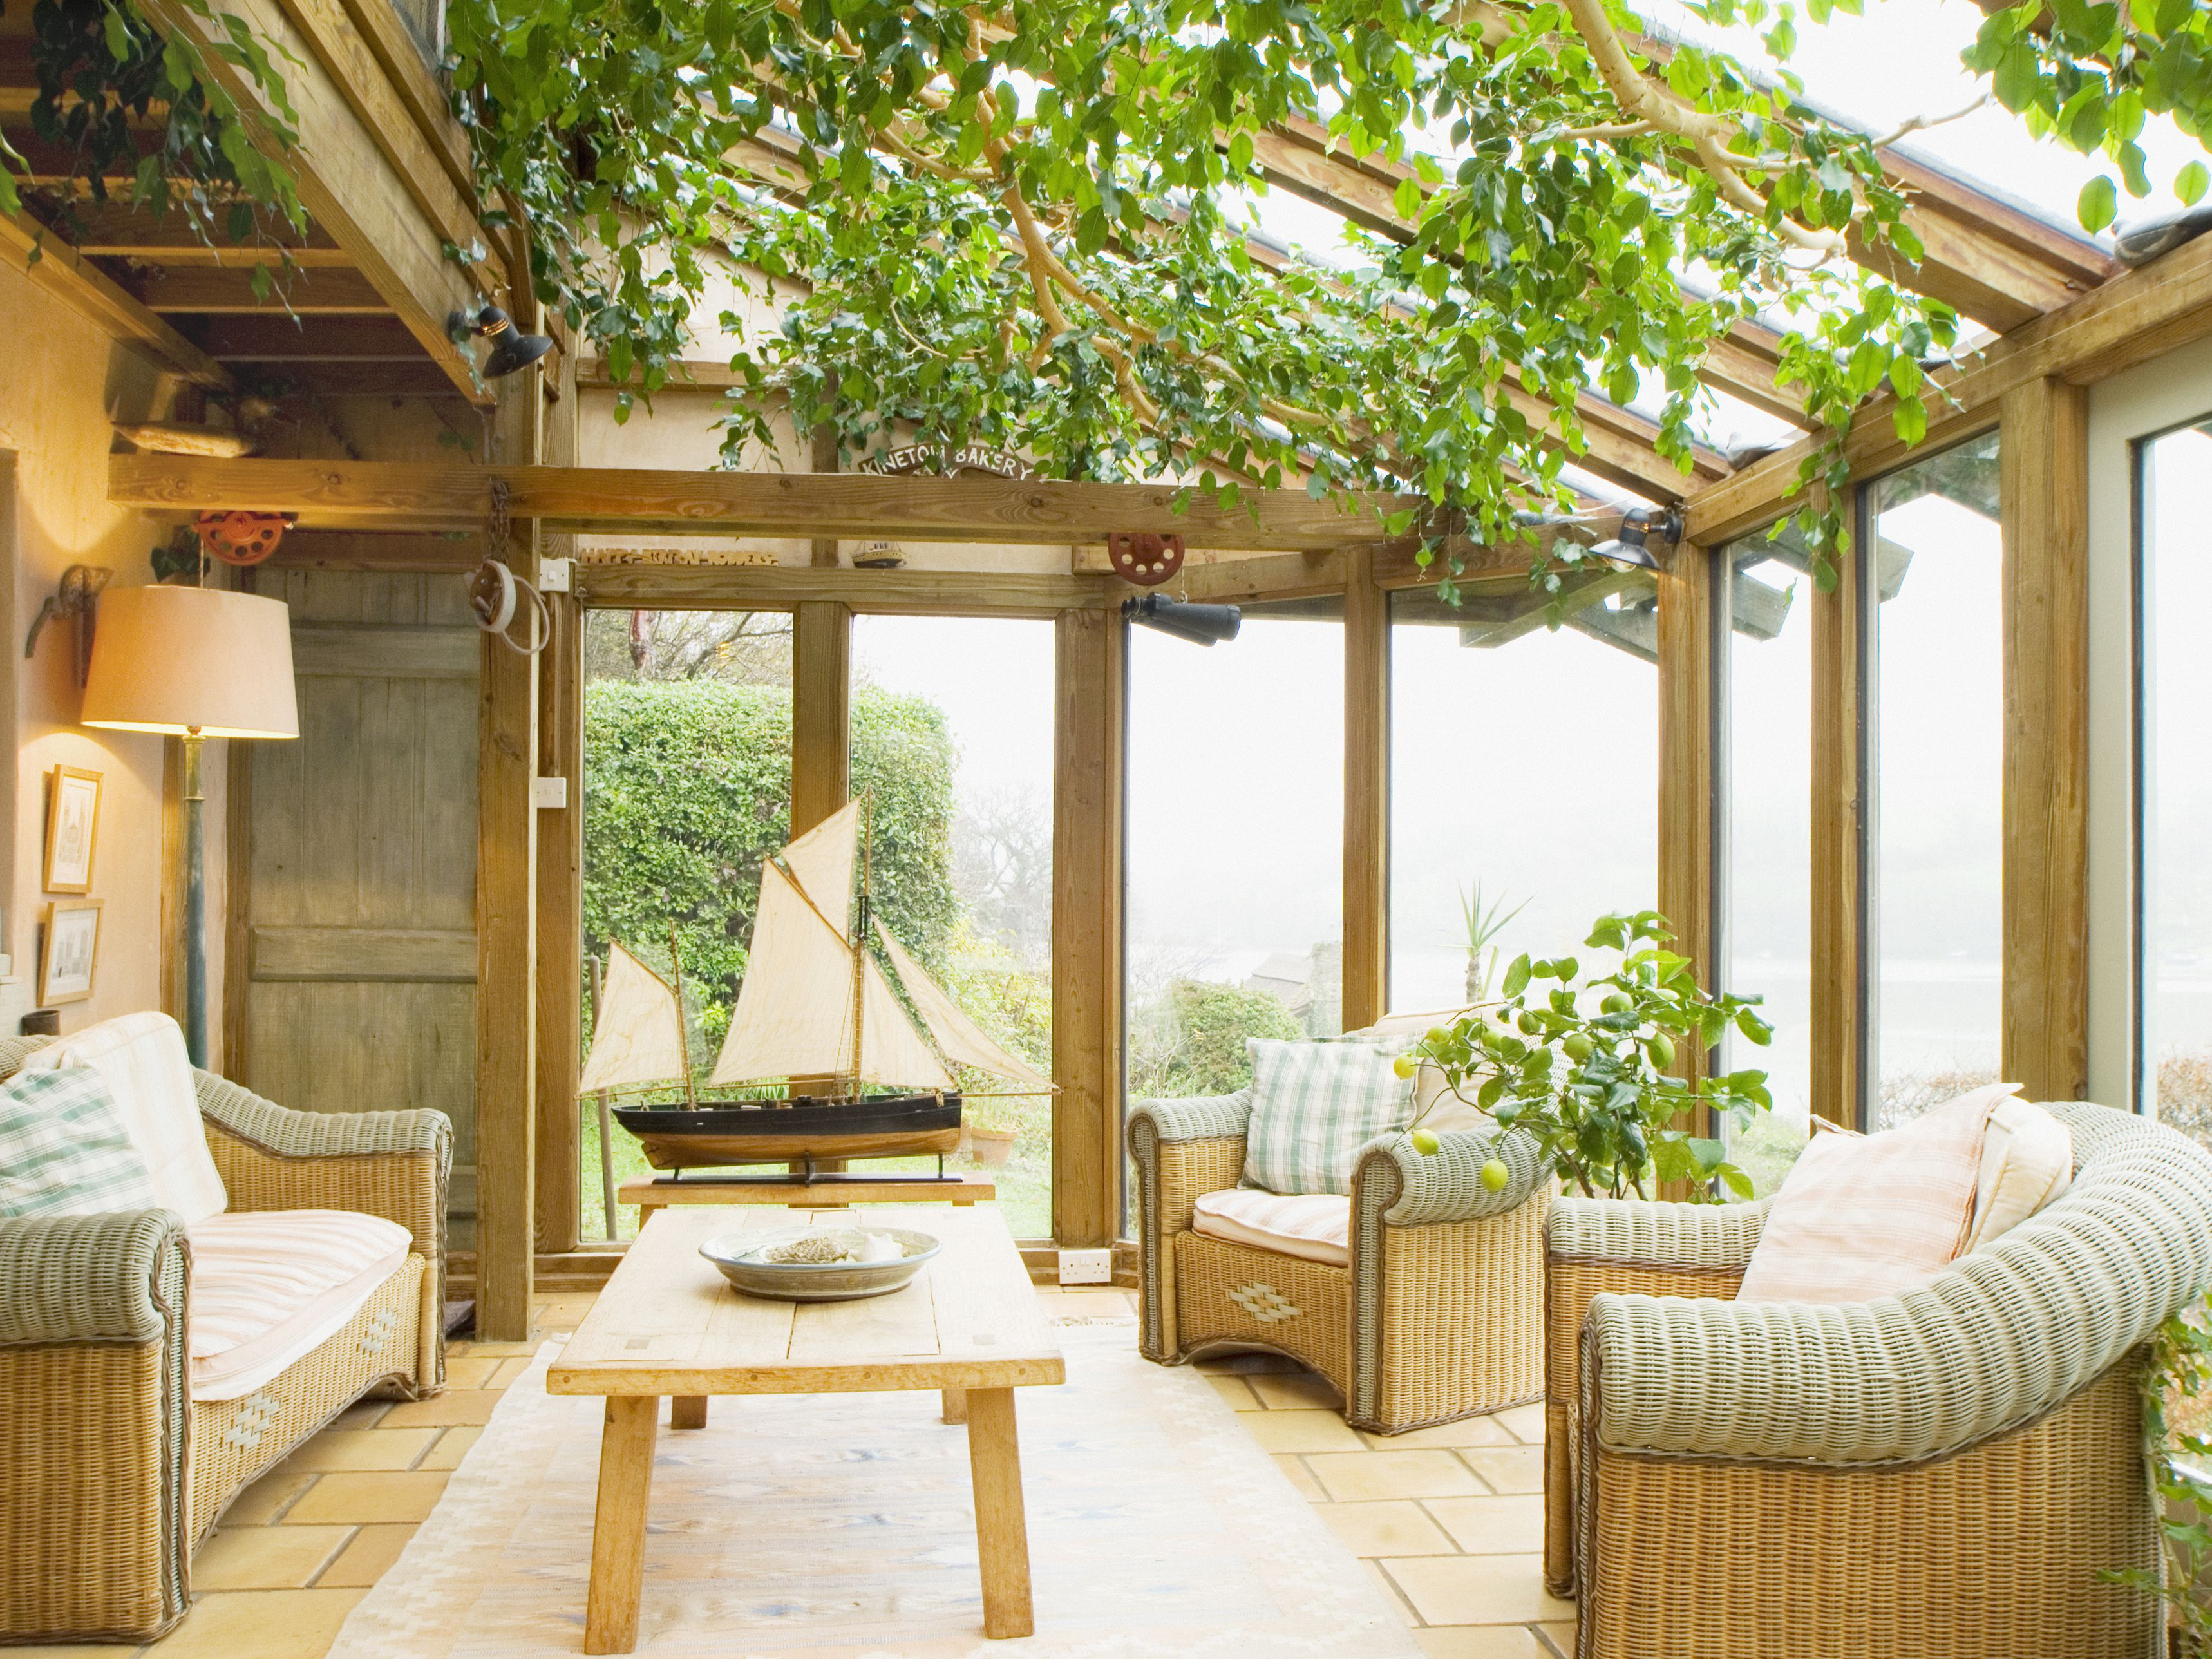 Outdoor Sunroom Ideas What To Know Before You Build